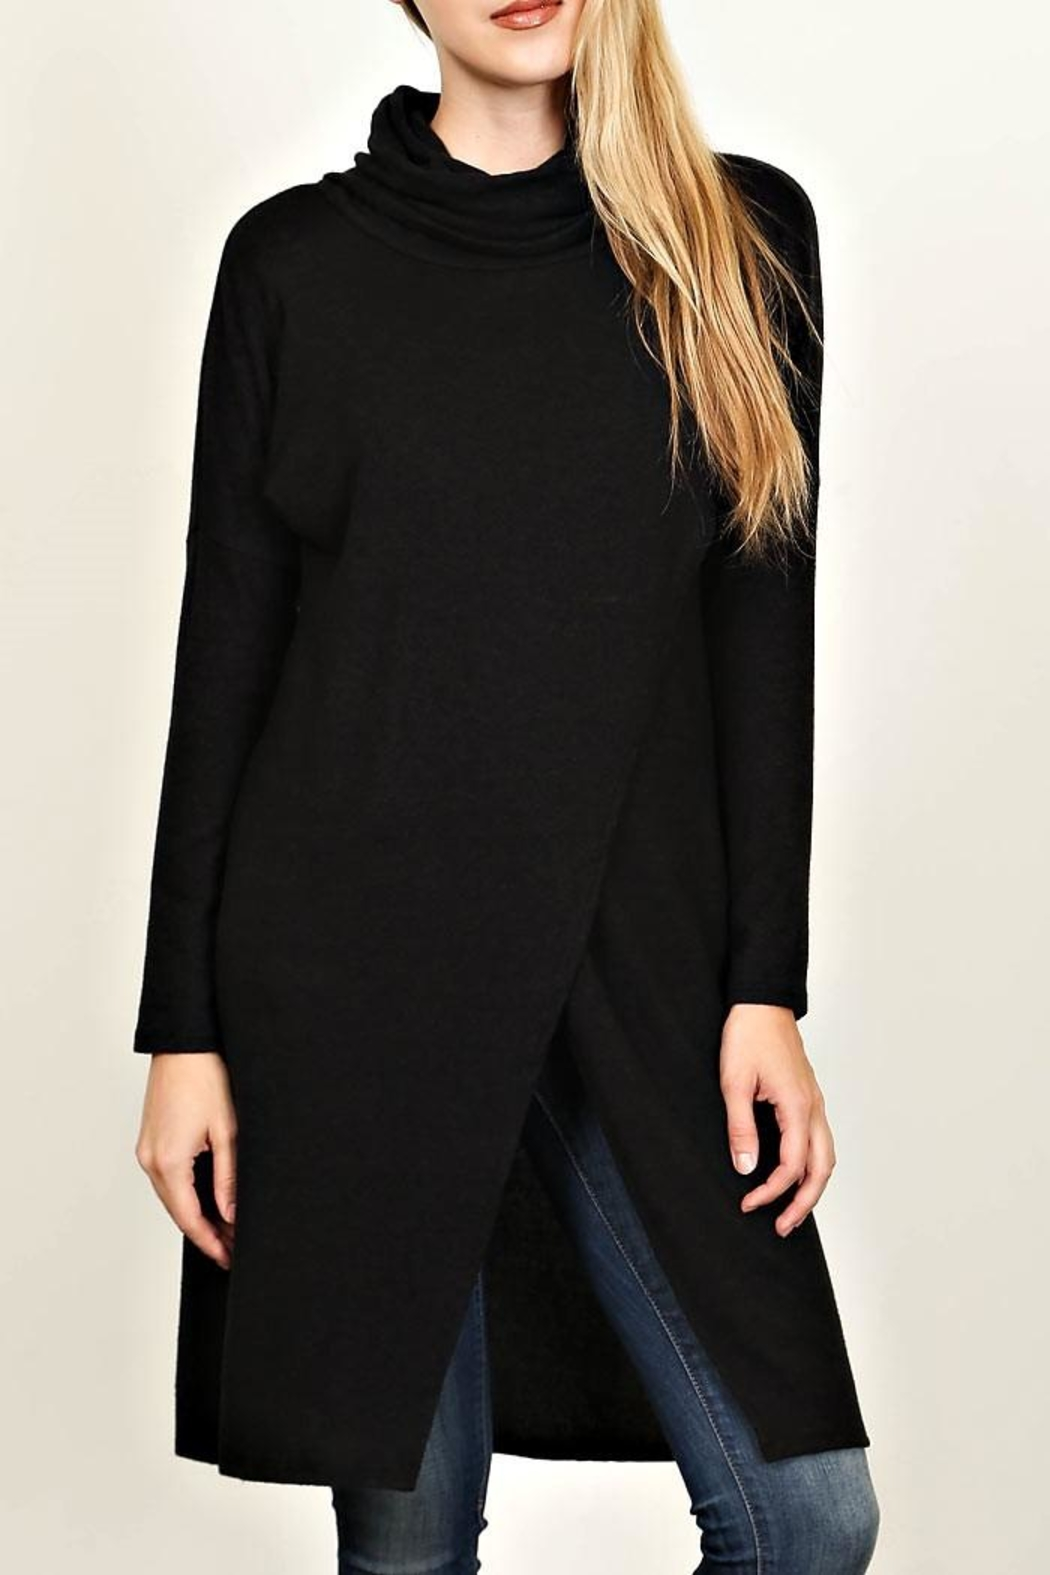 LoveRiche Long Black Tunic - Main Image